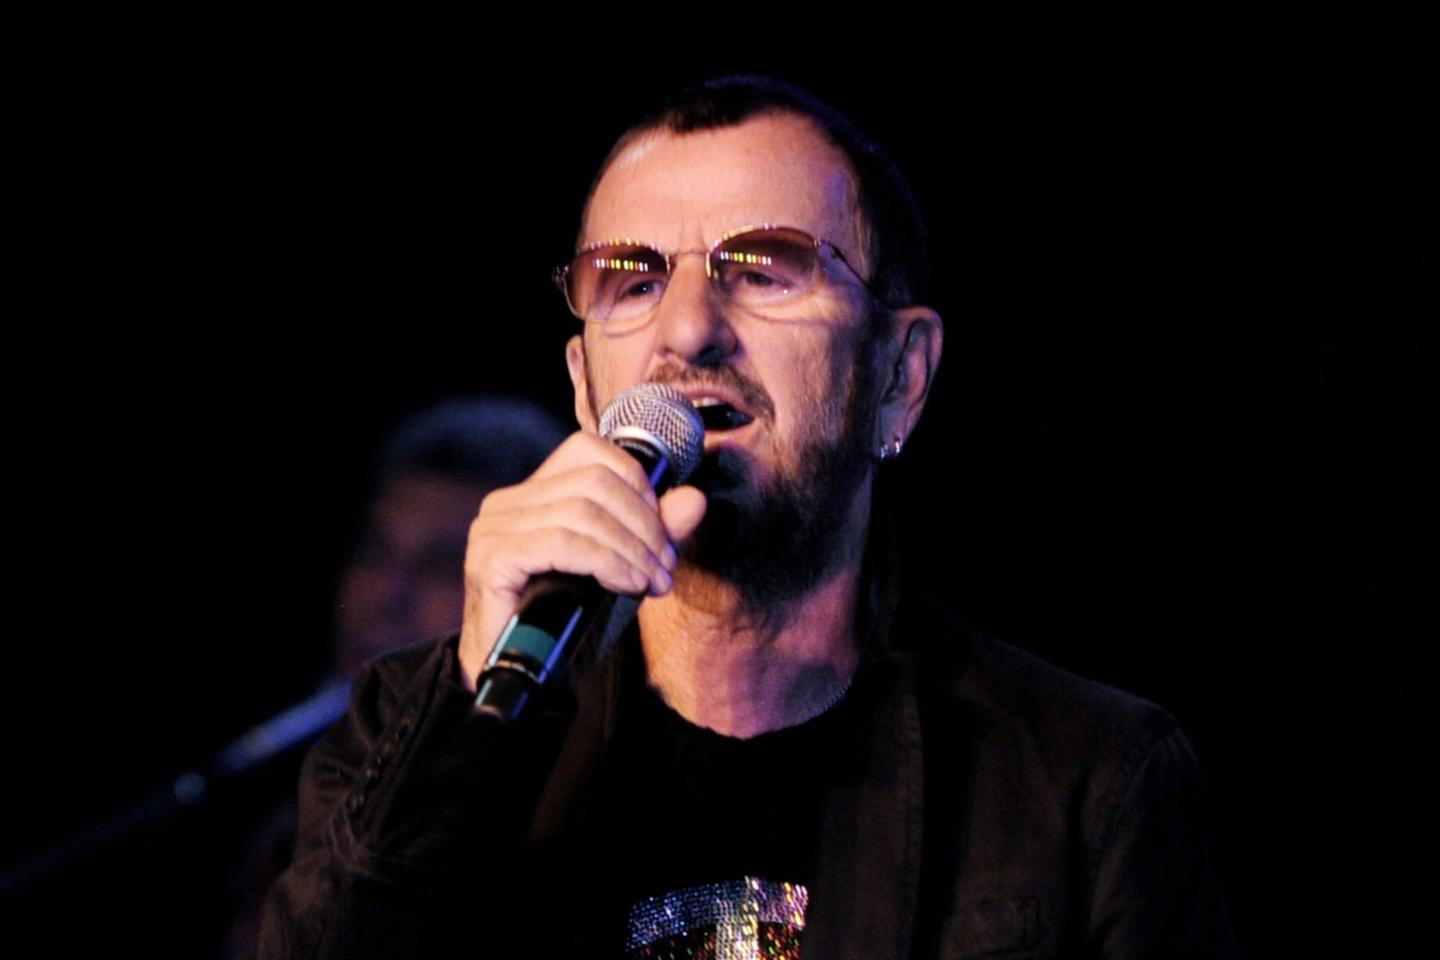 Ringo Starr Tour Dates 2020 Ringo Starr Tickets | Ringo Starr Tour Dates 2019 and Concert